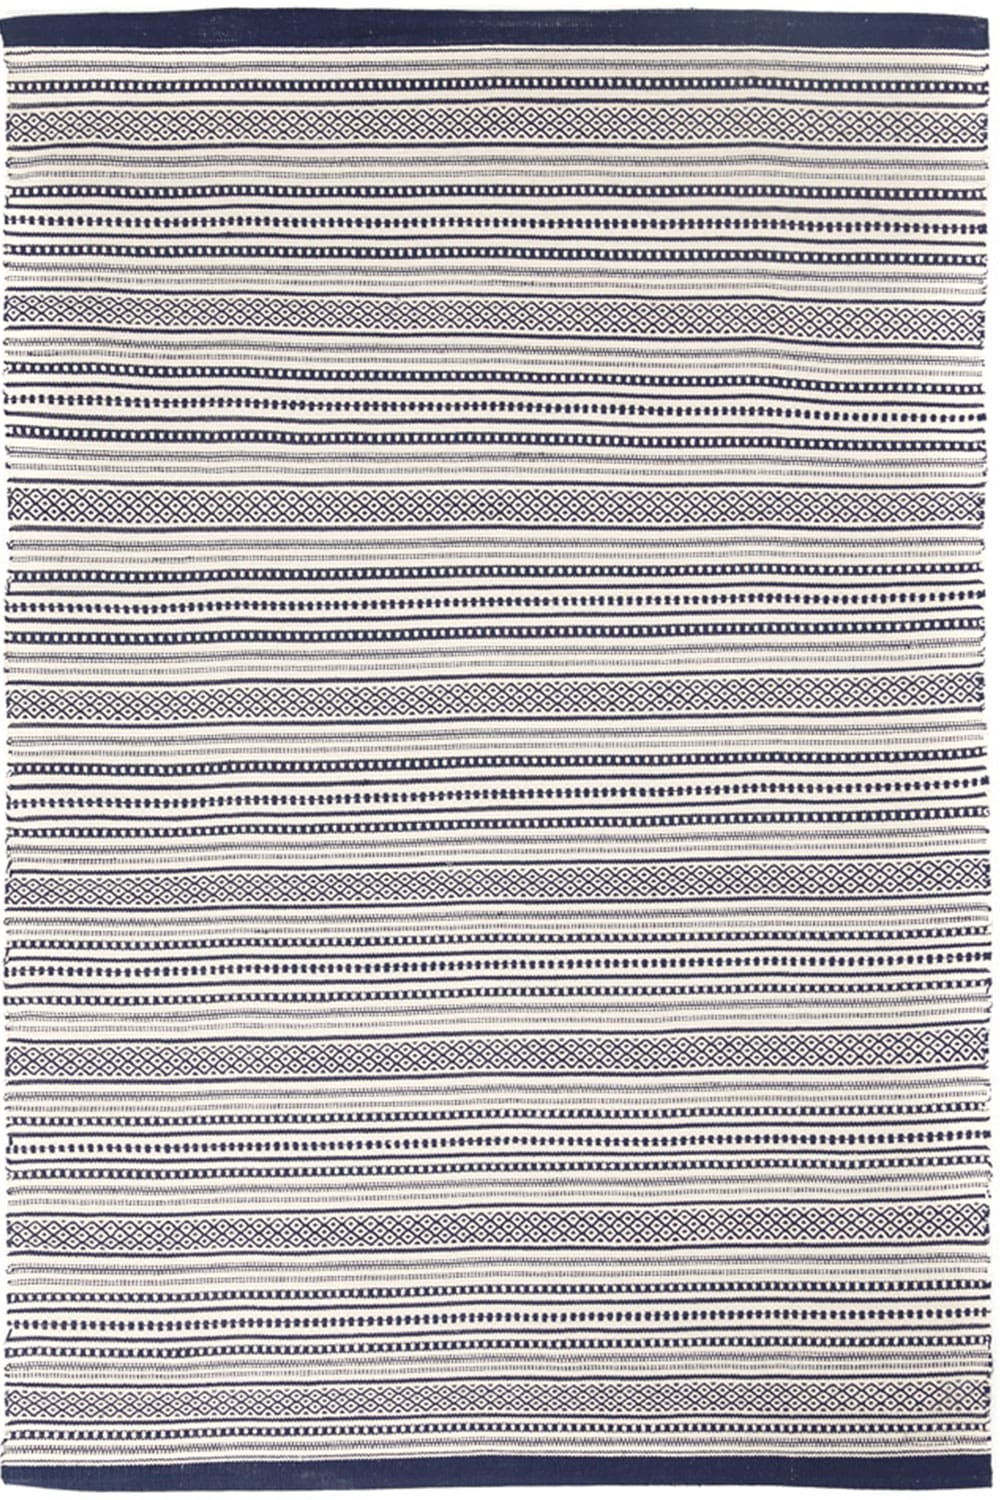 Χαλί Urban Cotton Kilim Titan Iris White-Blue Royal Carpet 140X200